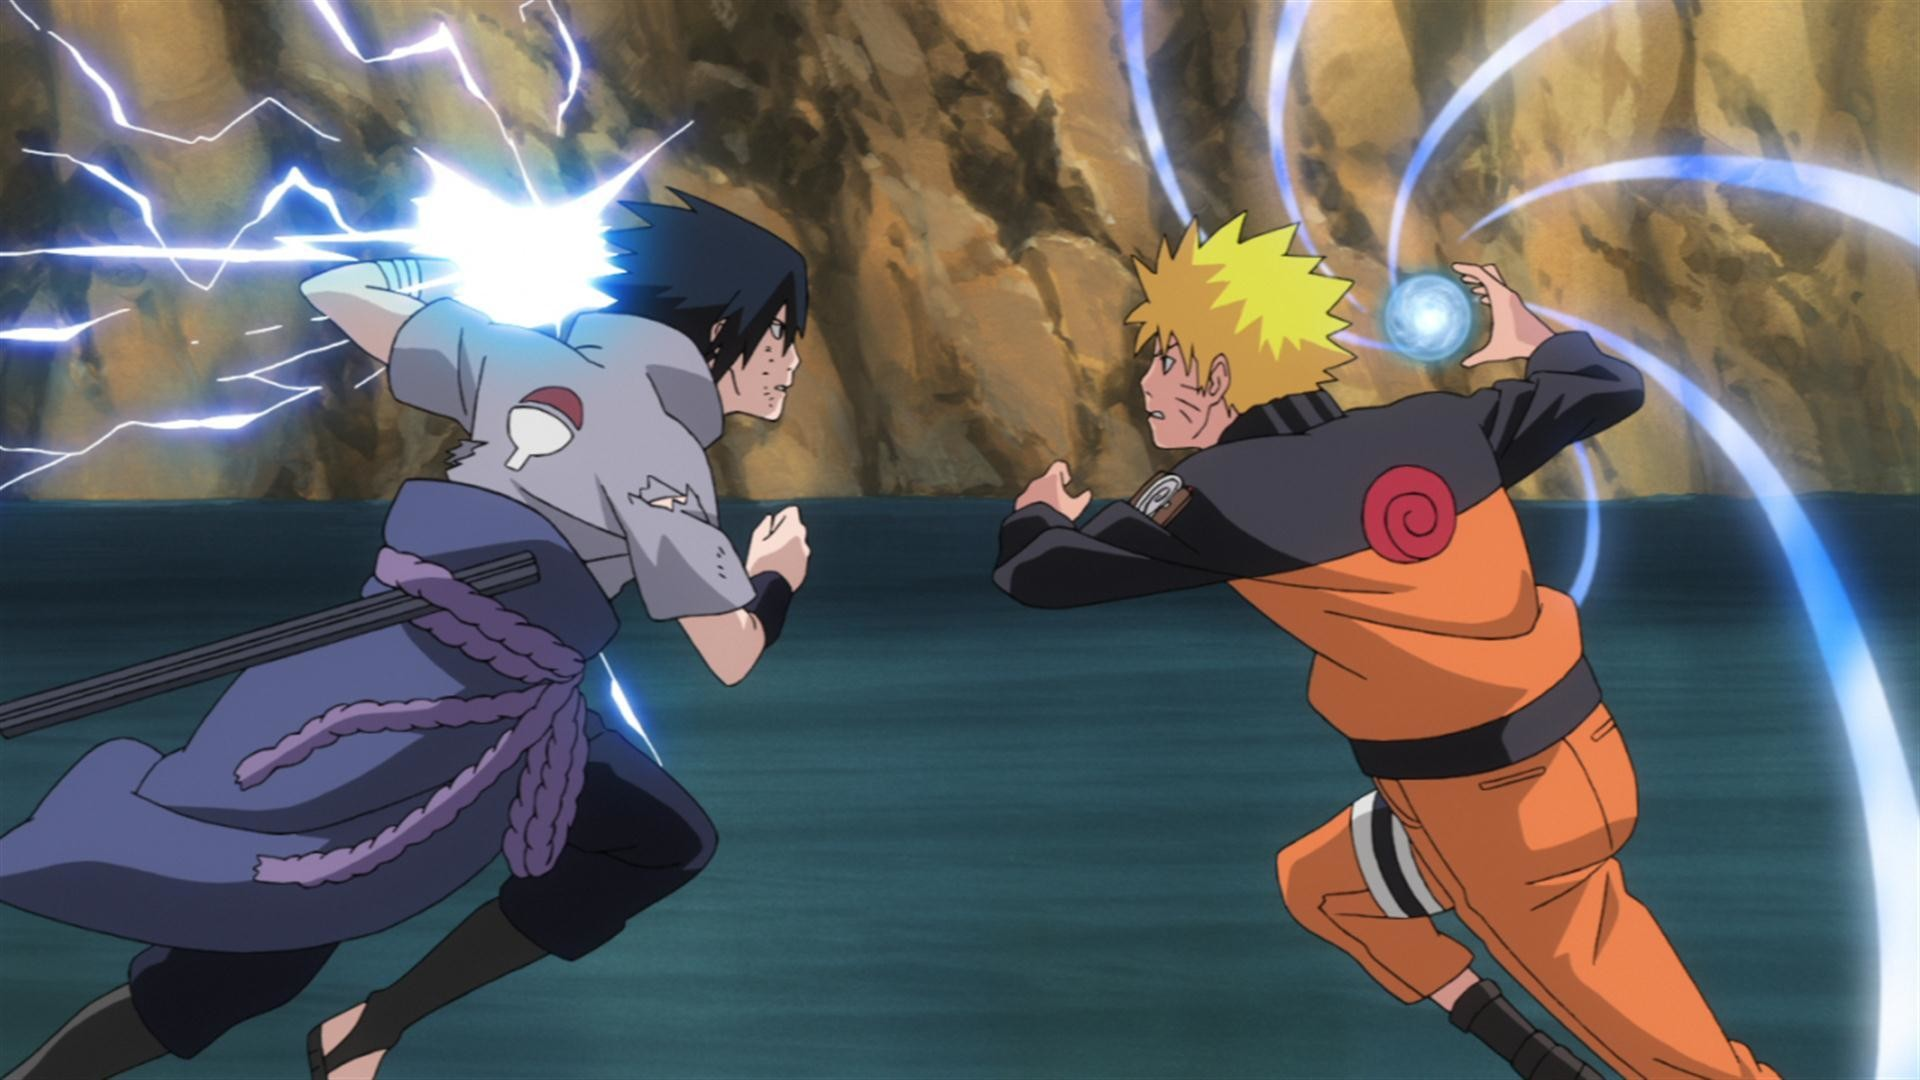 1920x1080 Naruto Vs Sasuke Wallpaper Shippuden 19977 Full HD Wallpaper .